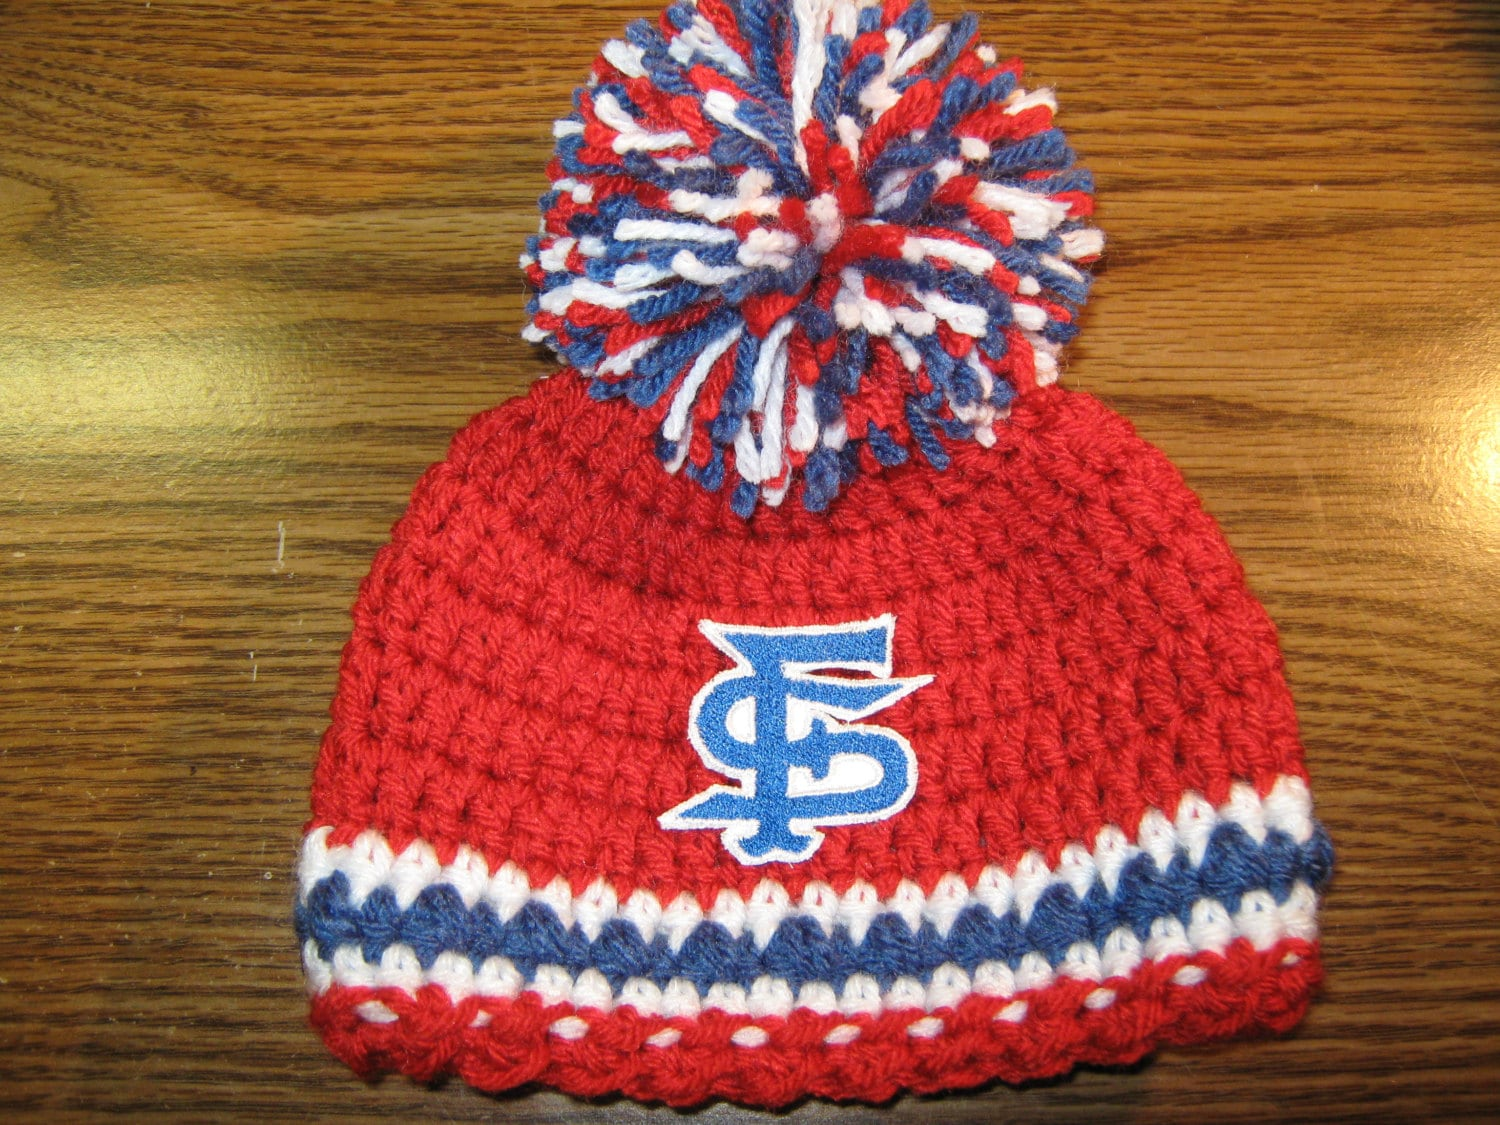 d177f541e Crochet Beanie Baby Hat - Embroidered Logo (Fresno State Bulldogs) Blue,  Red, White with an embroidered Bulldogs logo and 1 large pom pom